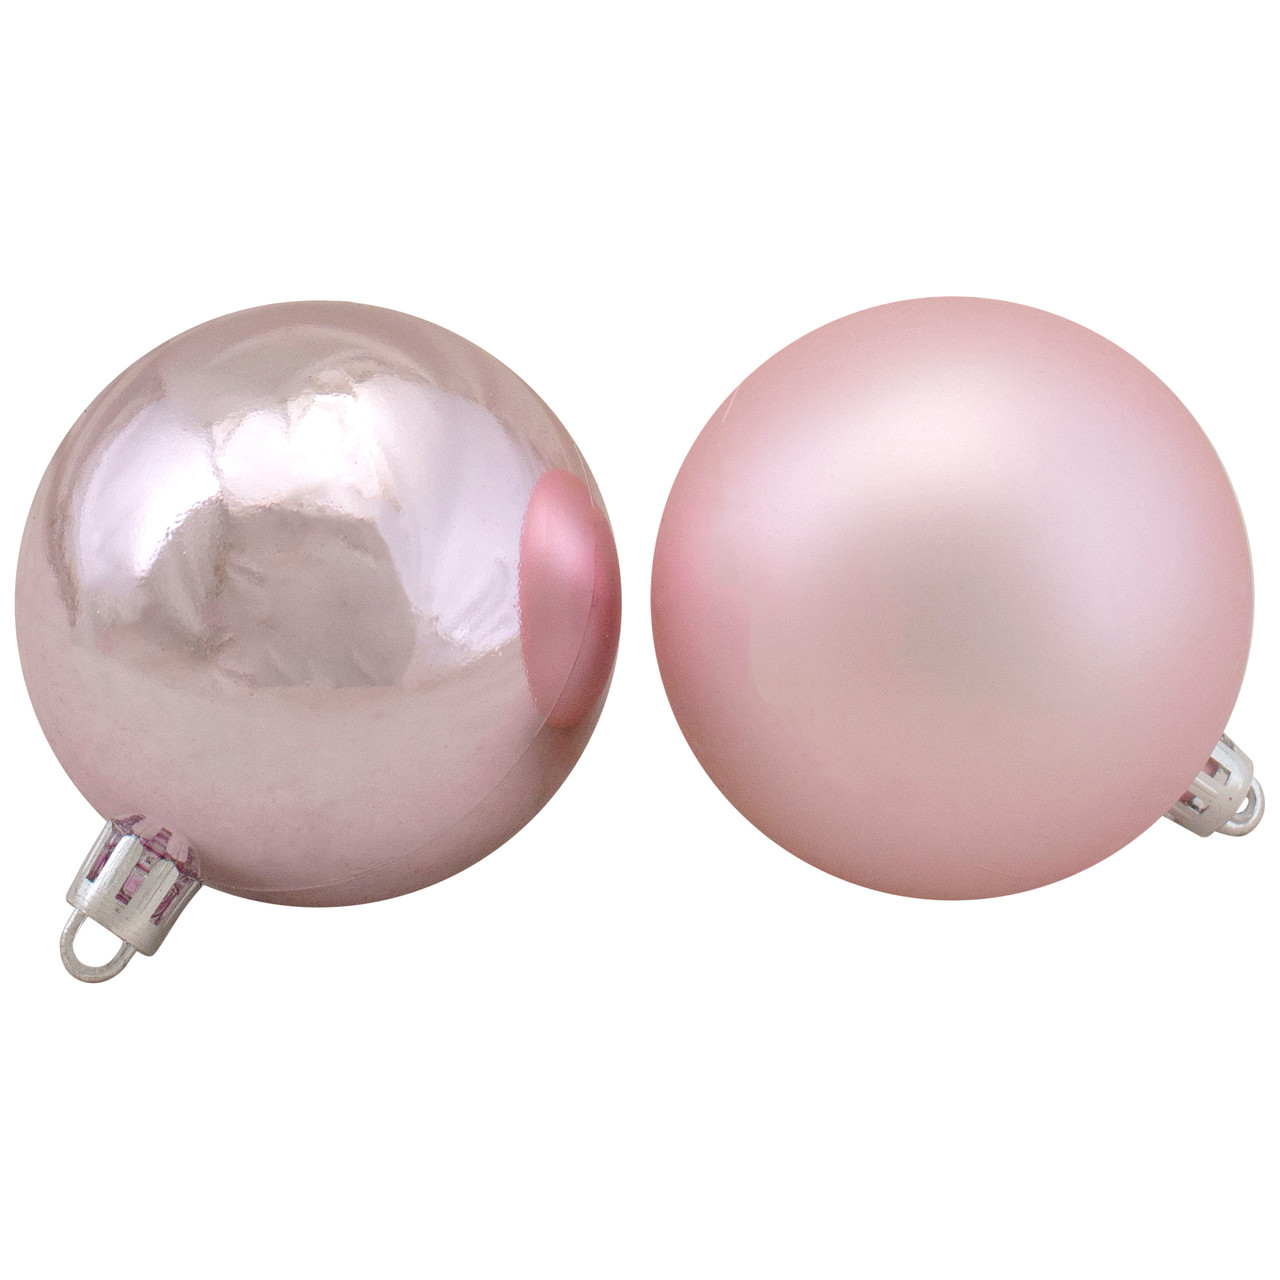 60ct blush pink shiny and matte shatterproof christmas ball ornaments 25 60mm 32621827